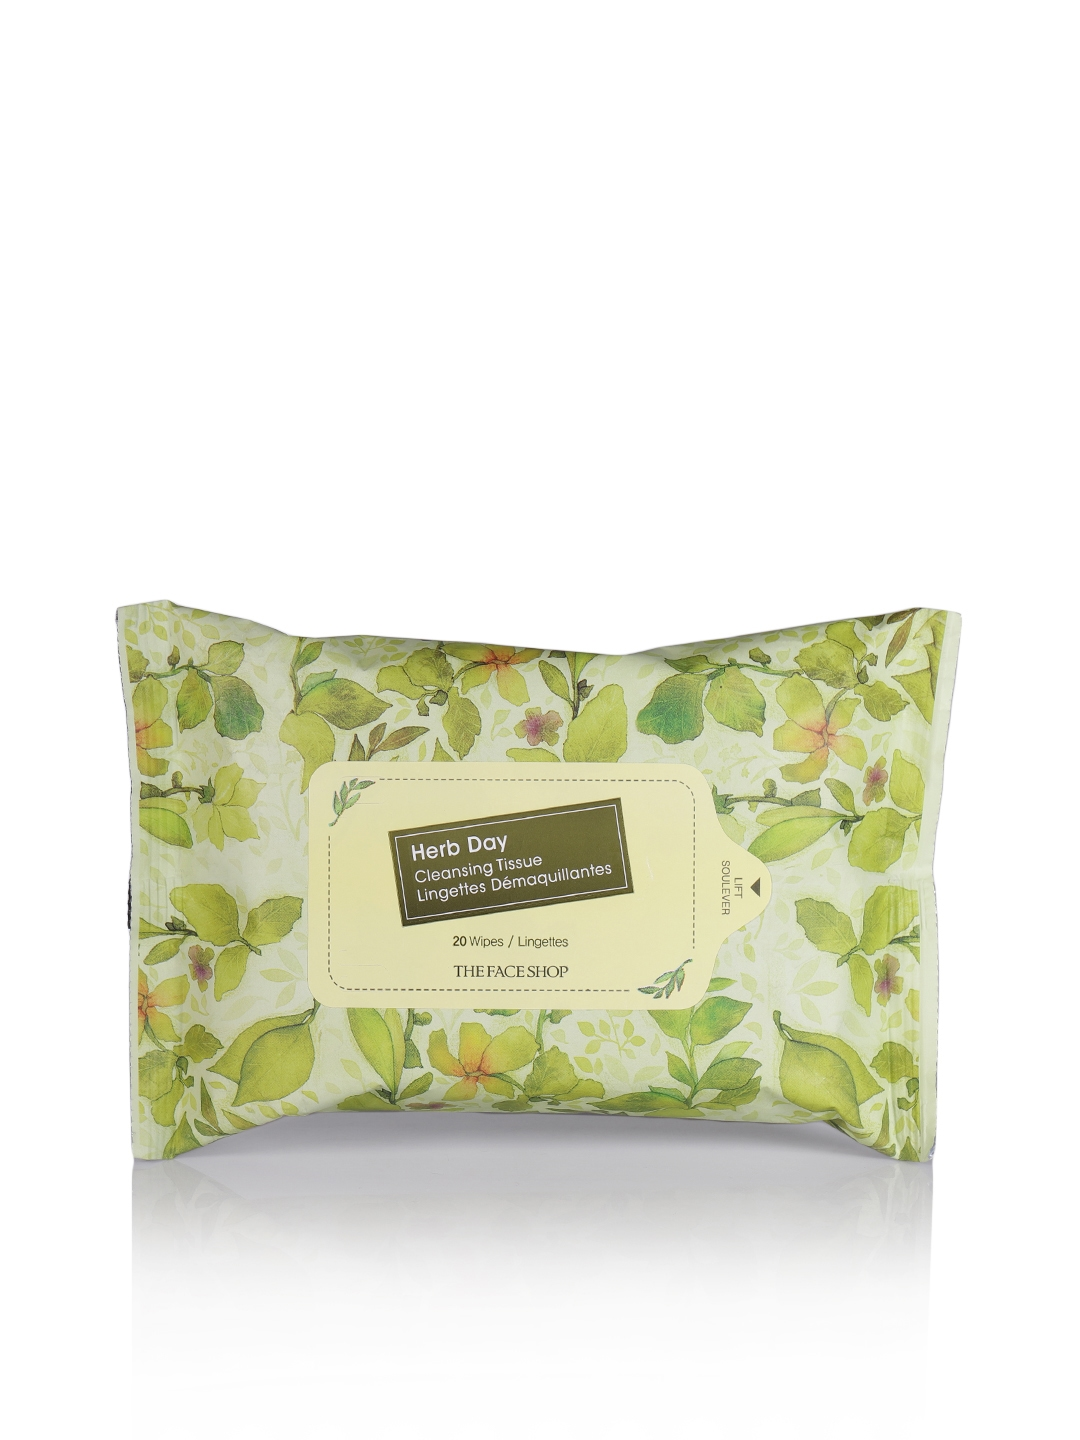 The Face Shop Unisex Herb Day Cleansing Tissue 20 Sheets